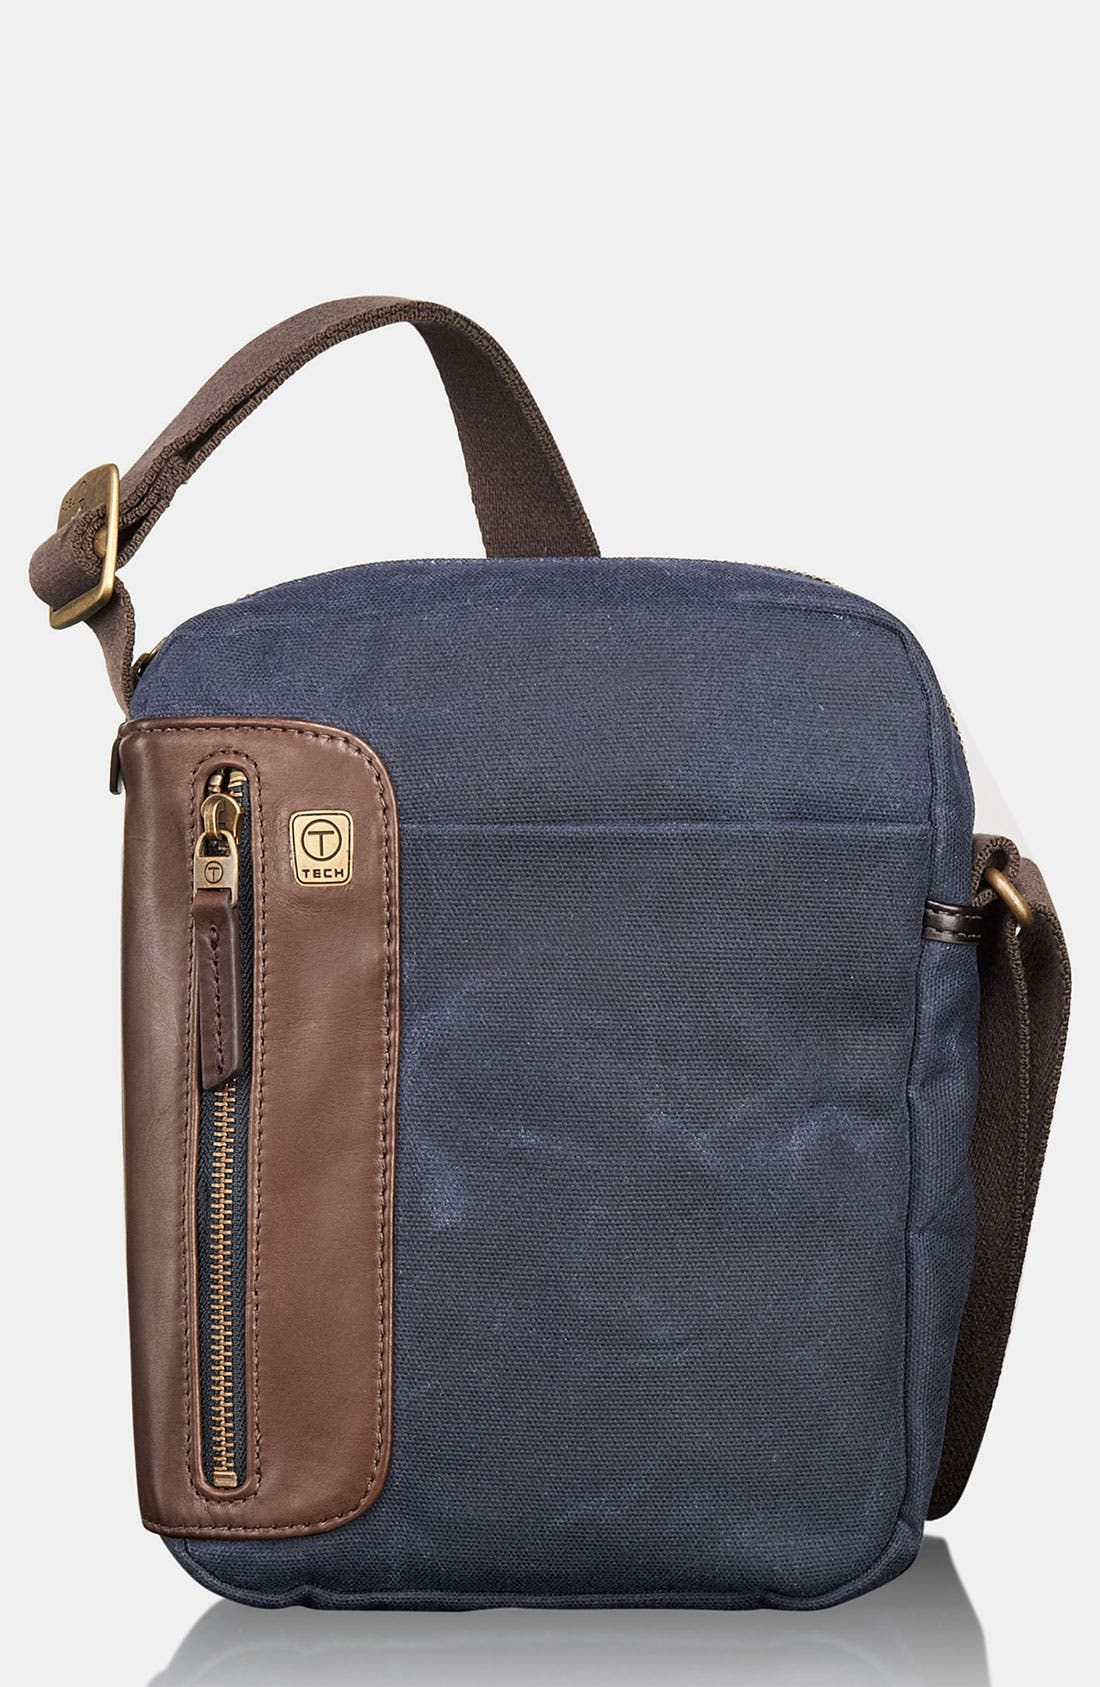 Alternate Image 1 Selected - Tumi 'Small T-Tech Forge - Pittsburgh' Crossbody Bag